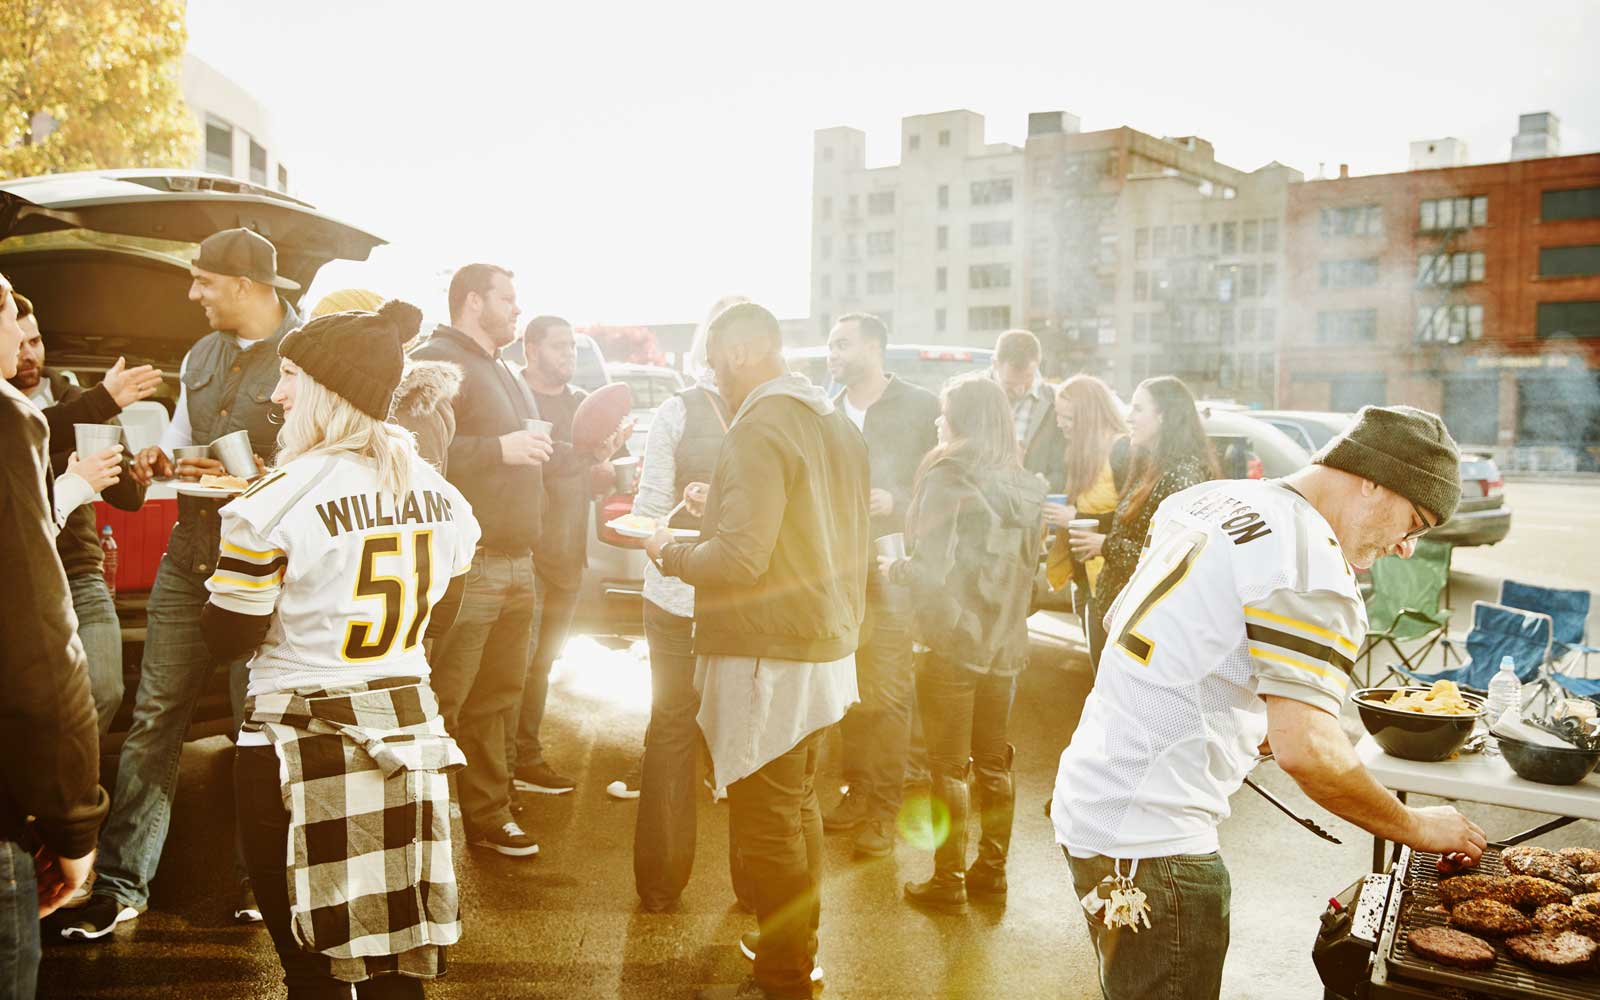 Friends tailgating before a football game